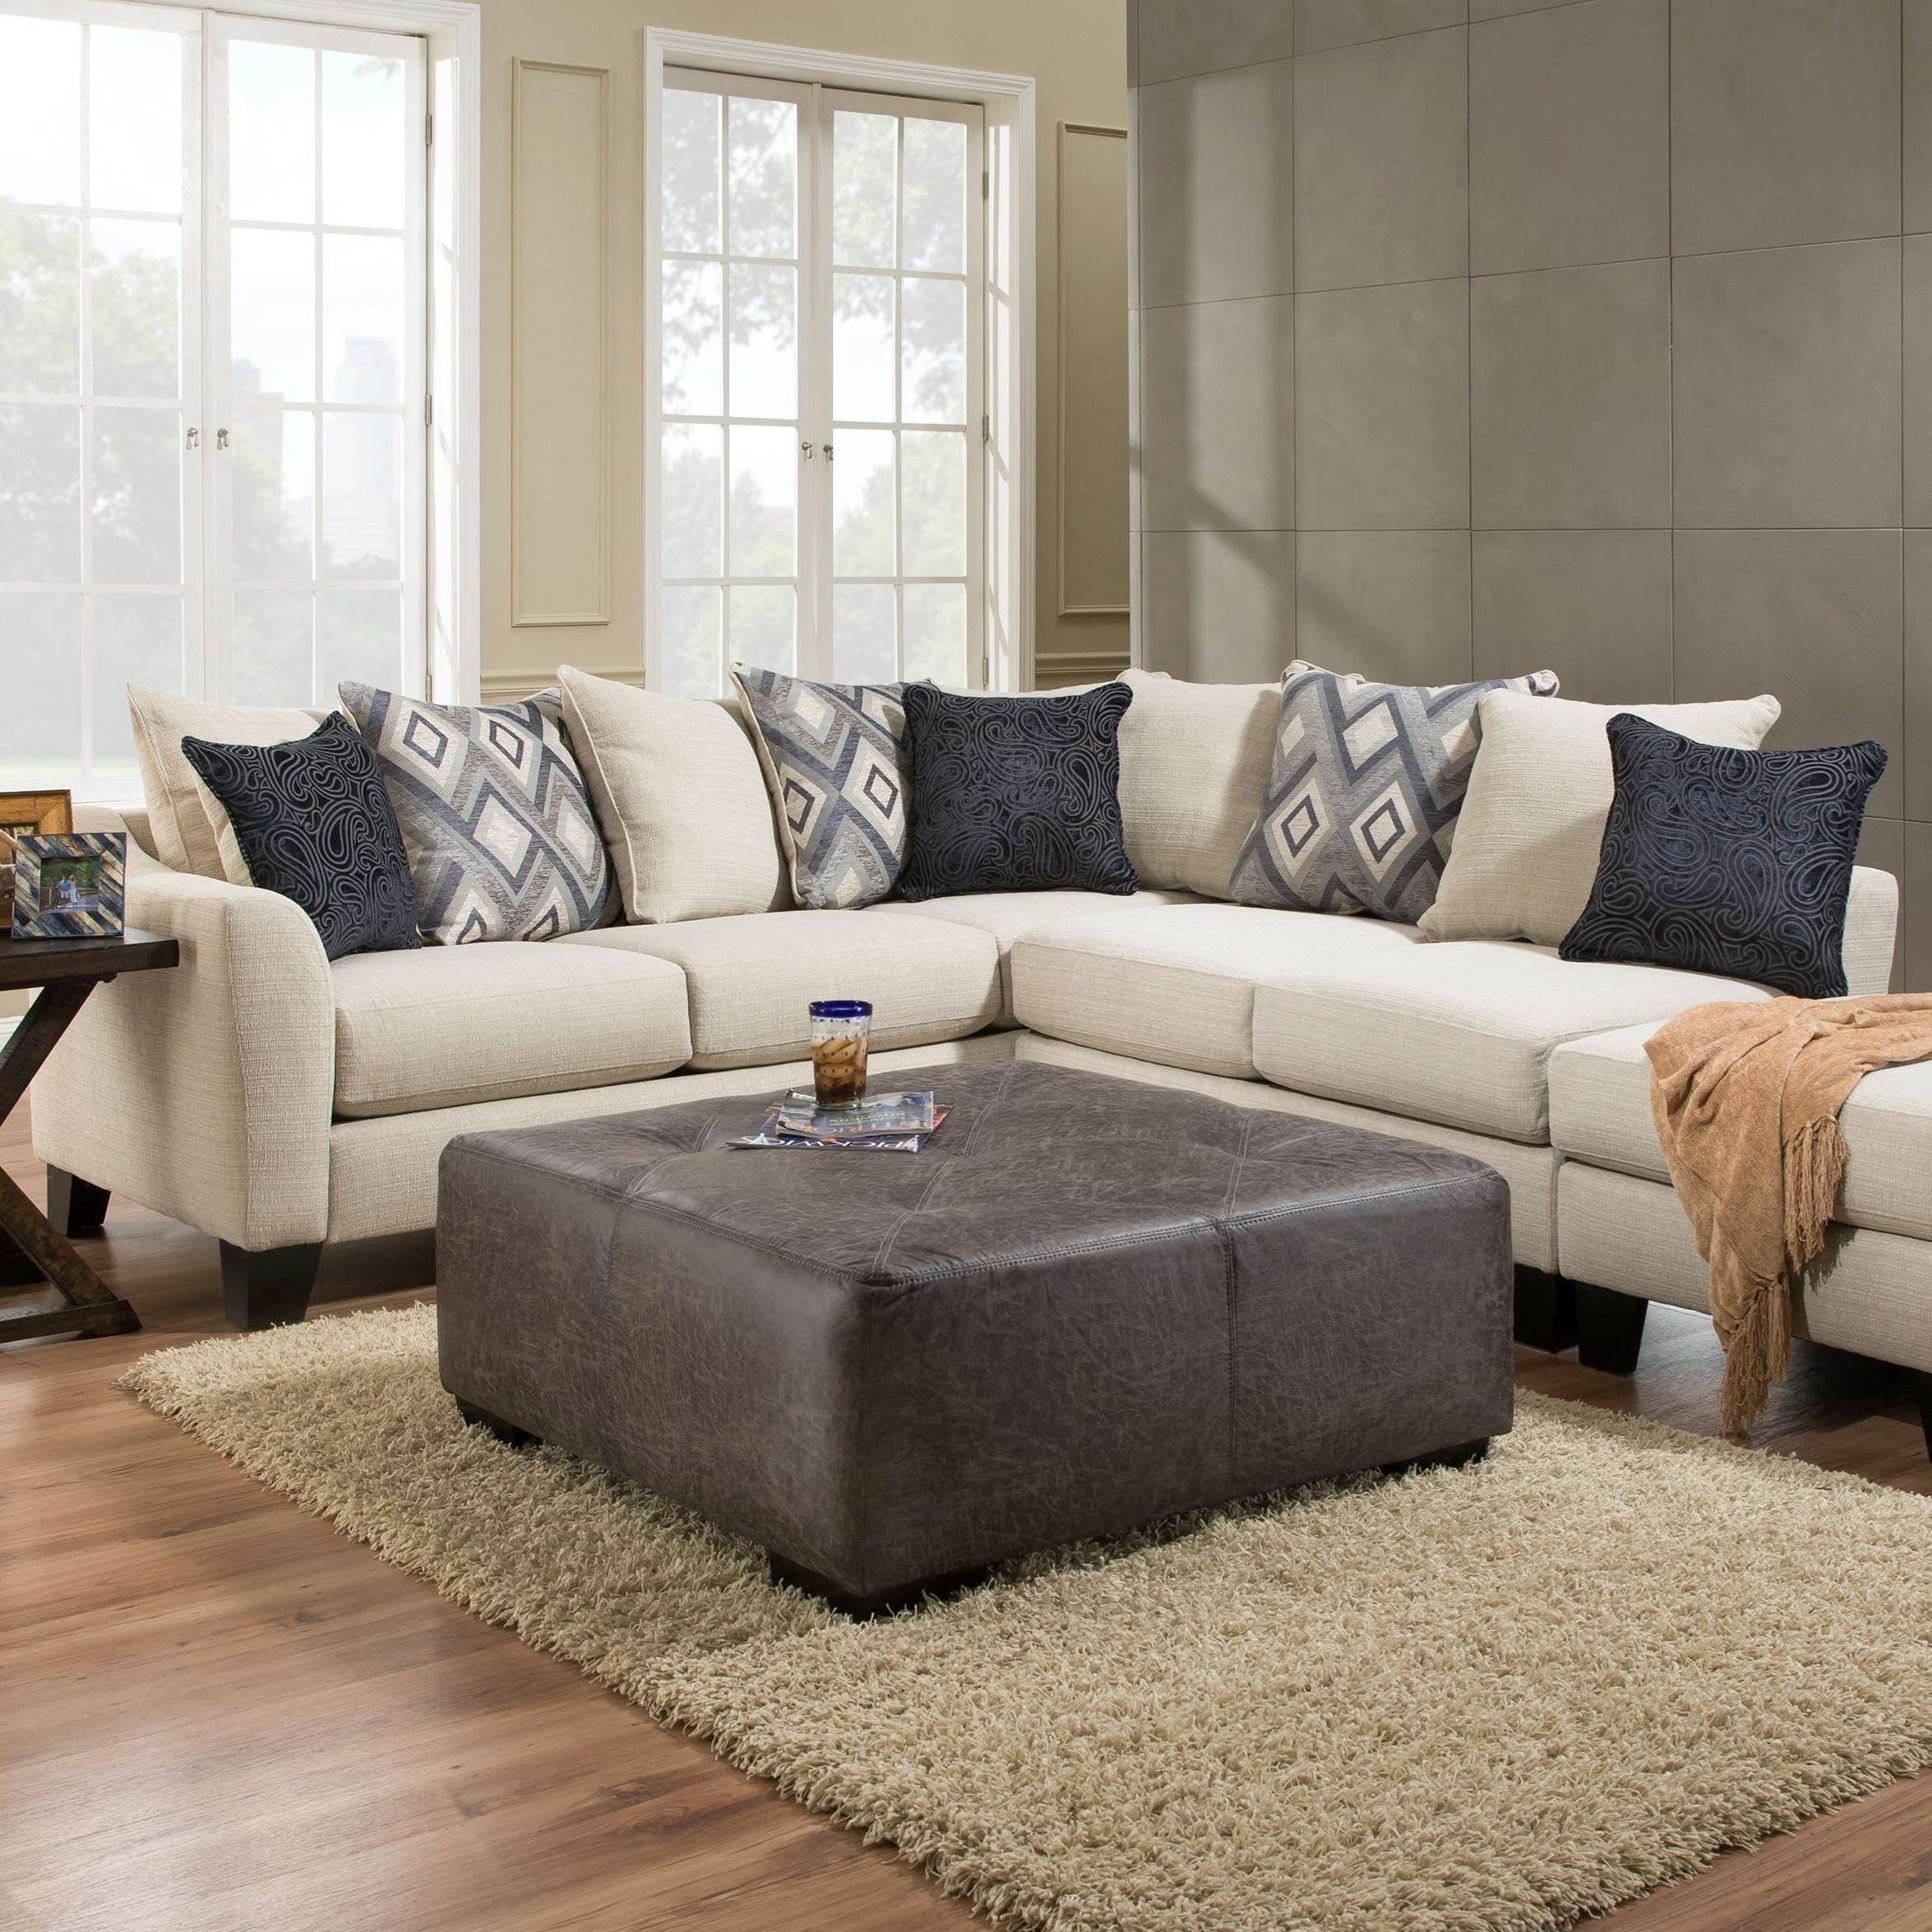 Merveilleux Albany 759 2 Piece Sectional Sofa In Dynasty Cream Fabric